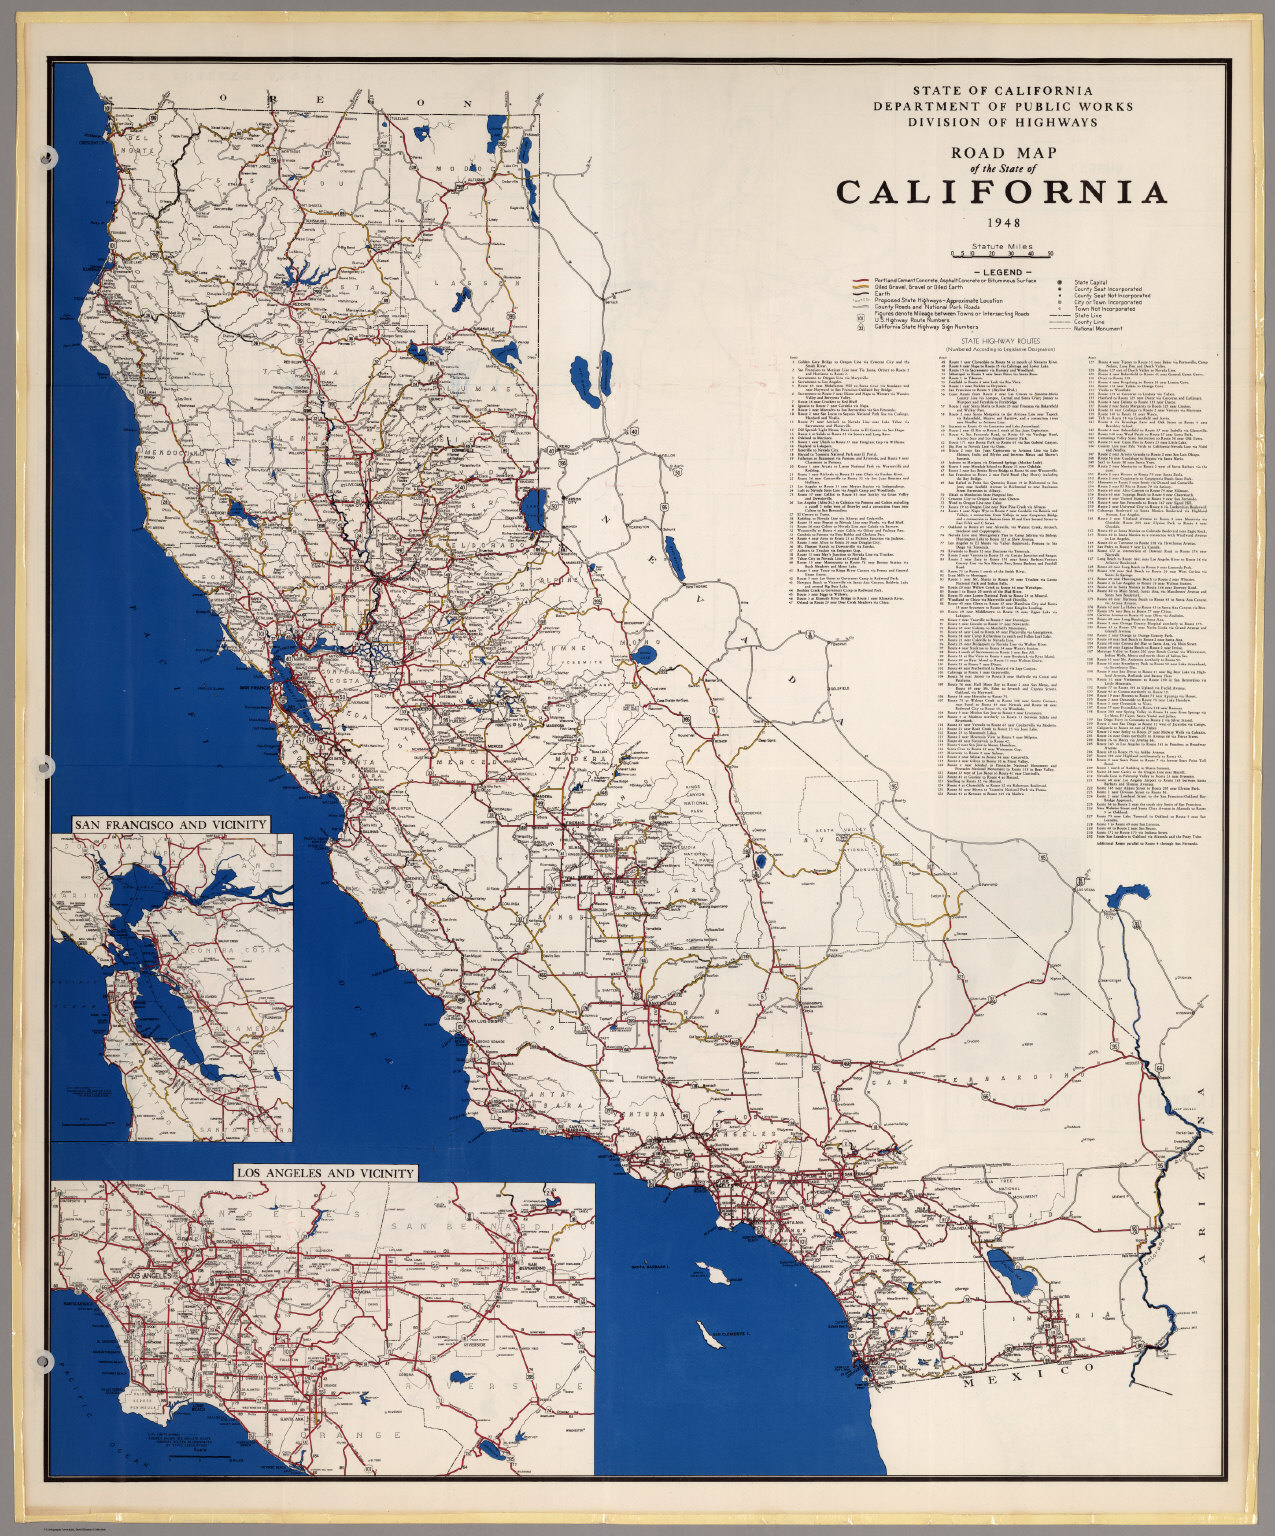 Road Map of the State of California, 1948.